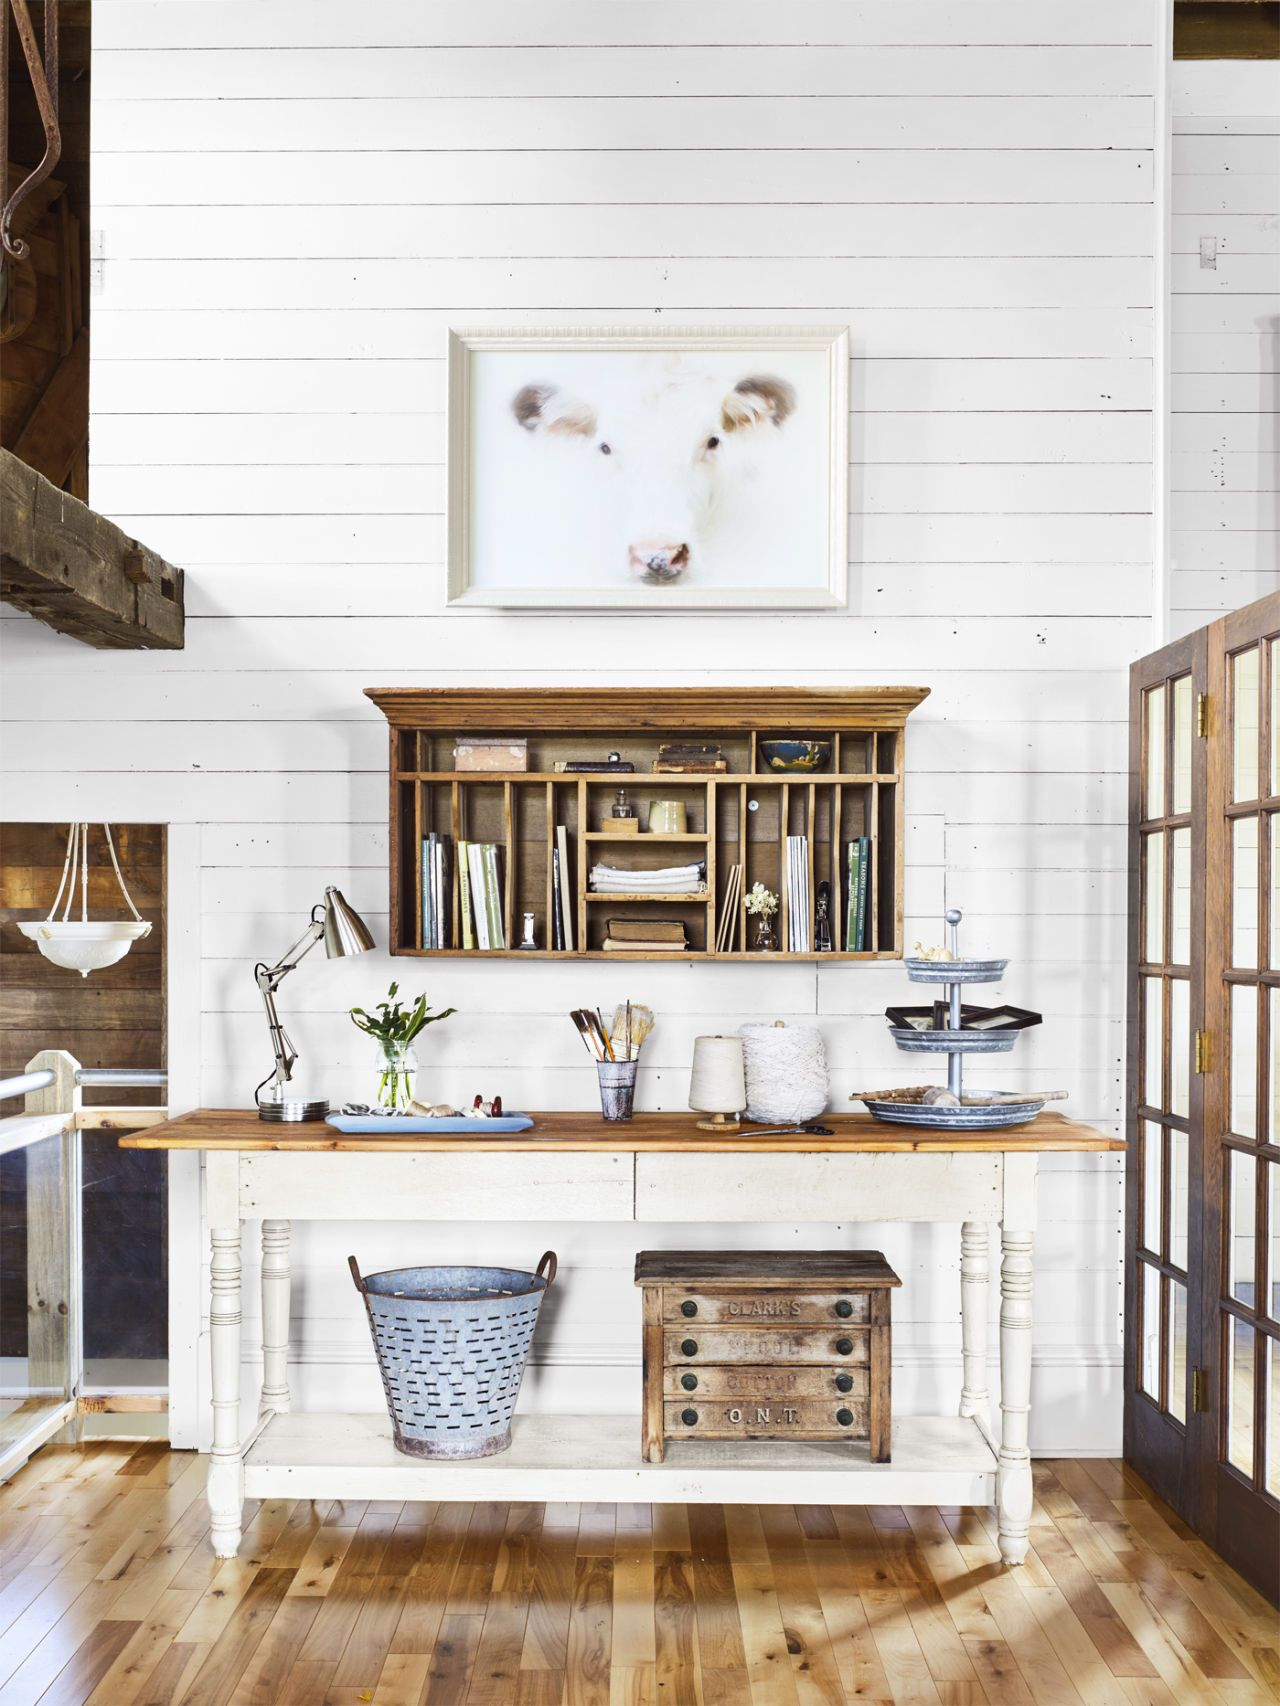 25 Ways to Add Farmhouse Style to Any Home | Artwork, Farming and ...